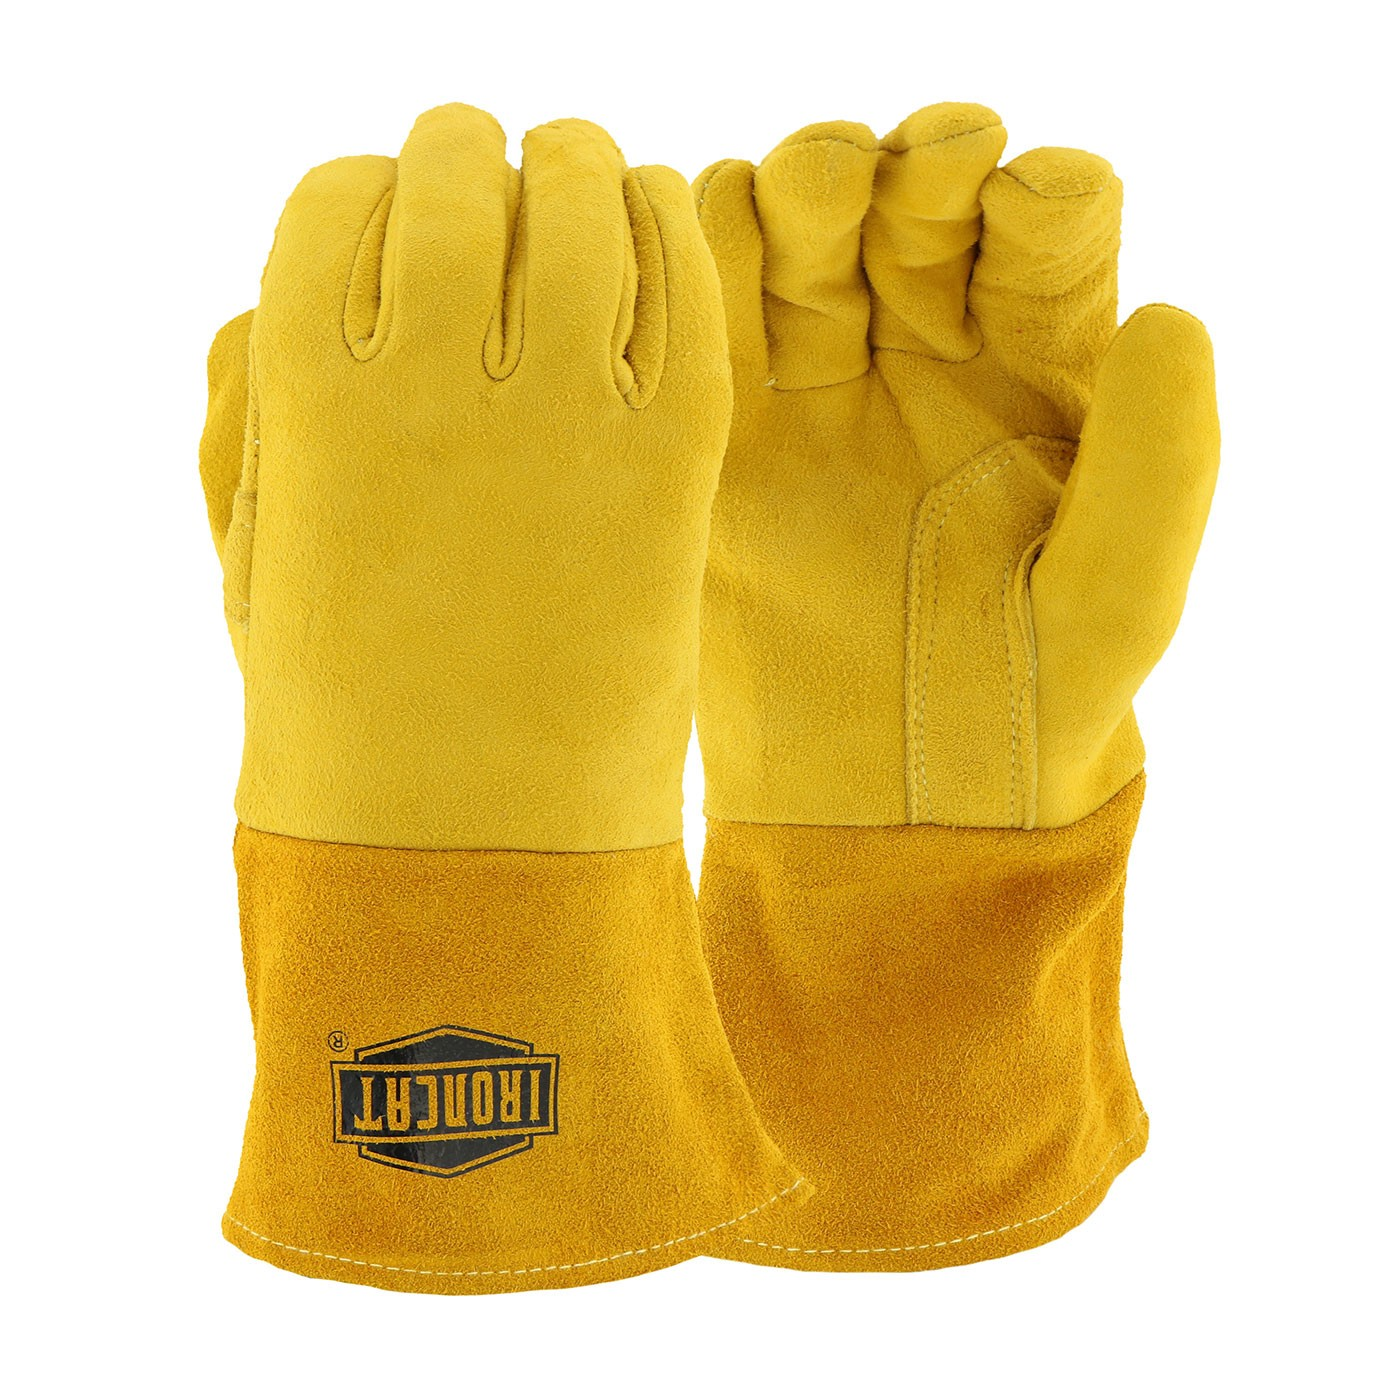 Ironcat® Ironcat® Premium Split Deerskin Leather Mig Glove with Cotton Foam Liner and Kevlar® Stitching  (#6030)